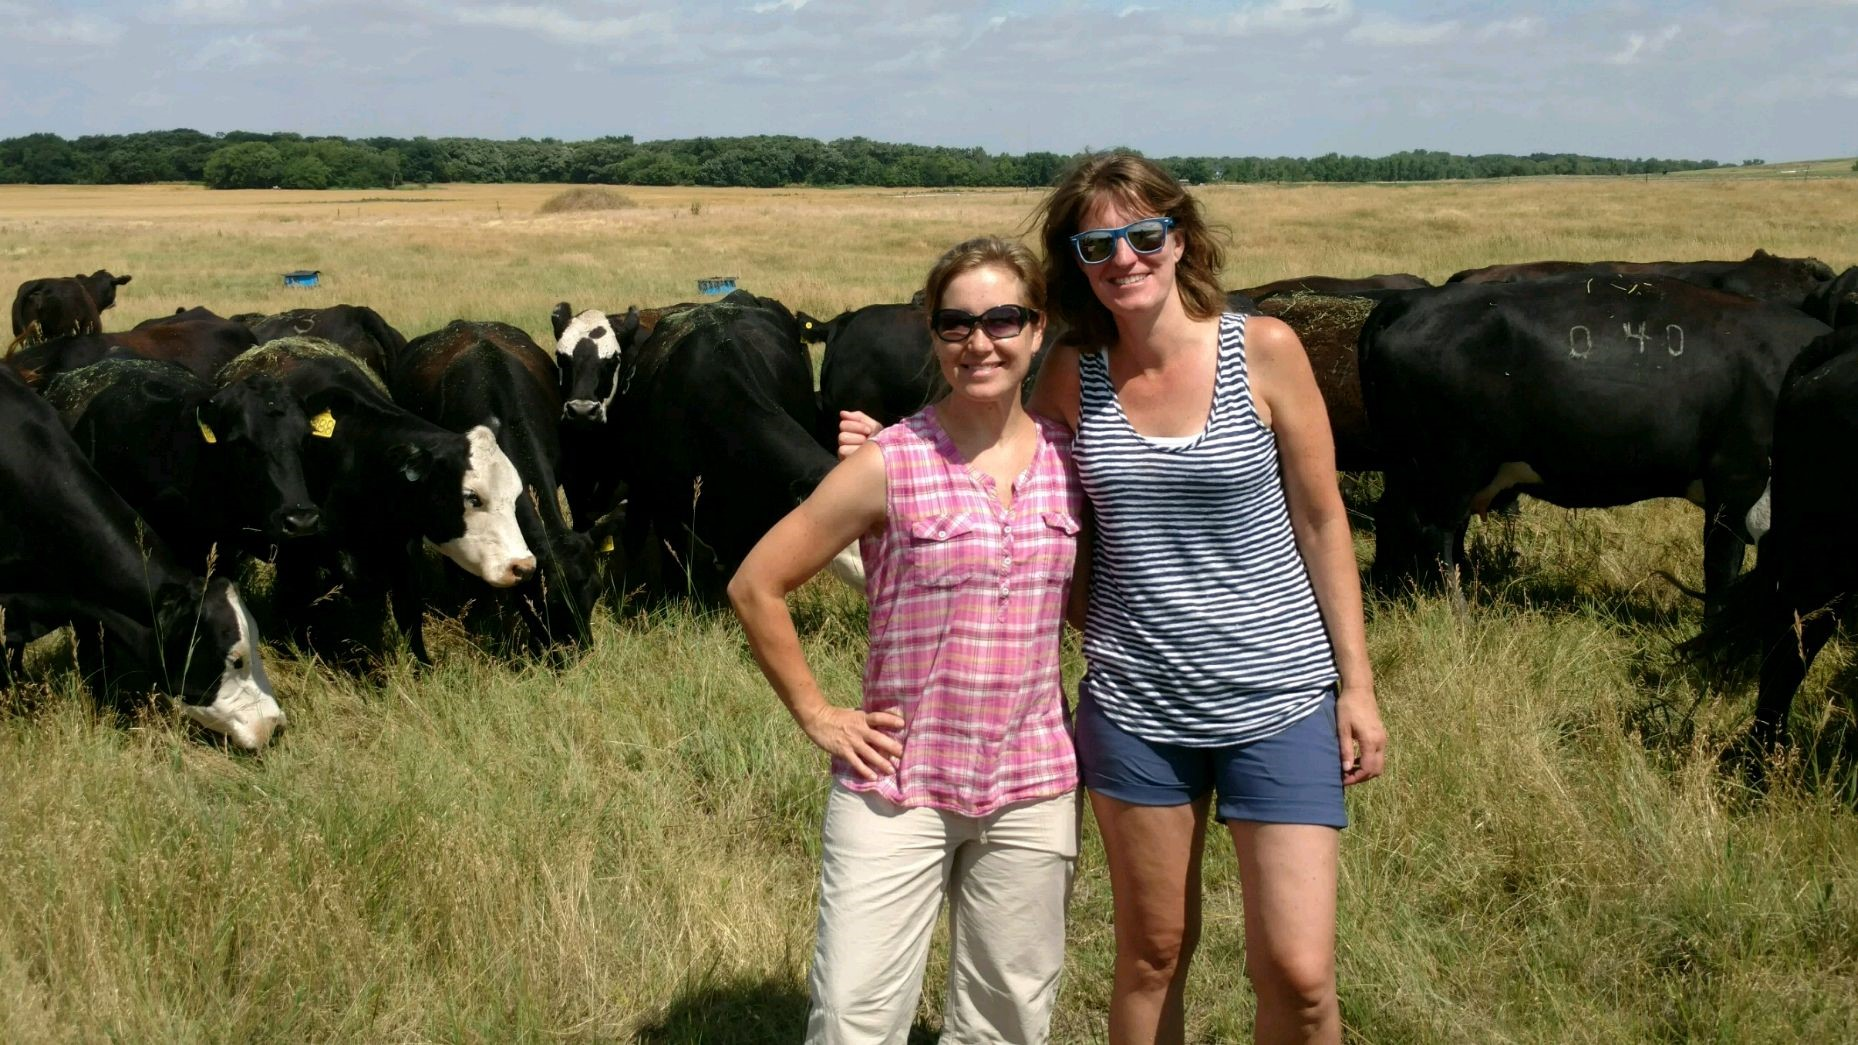 Field of Cows: The author (right), with her friend Tracey on the farm in Kansas.